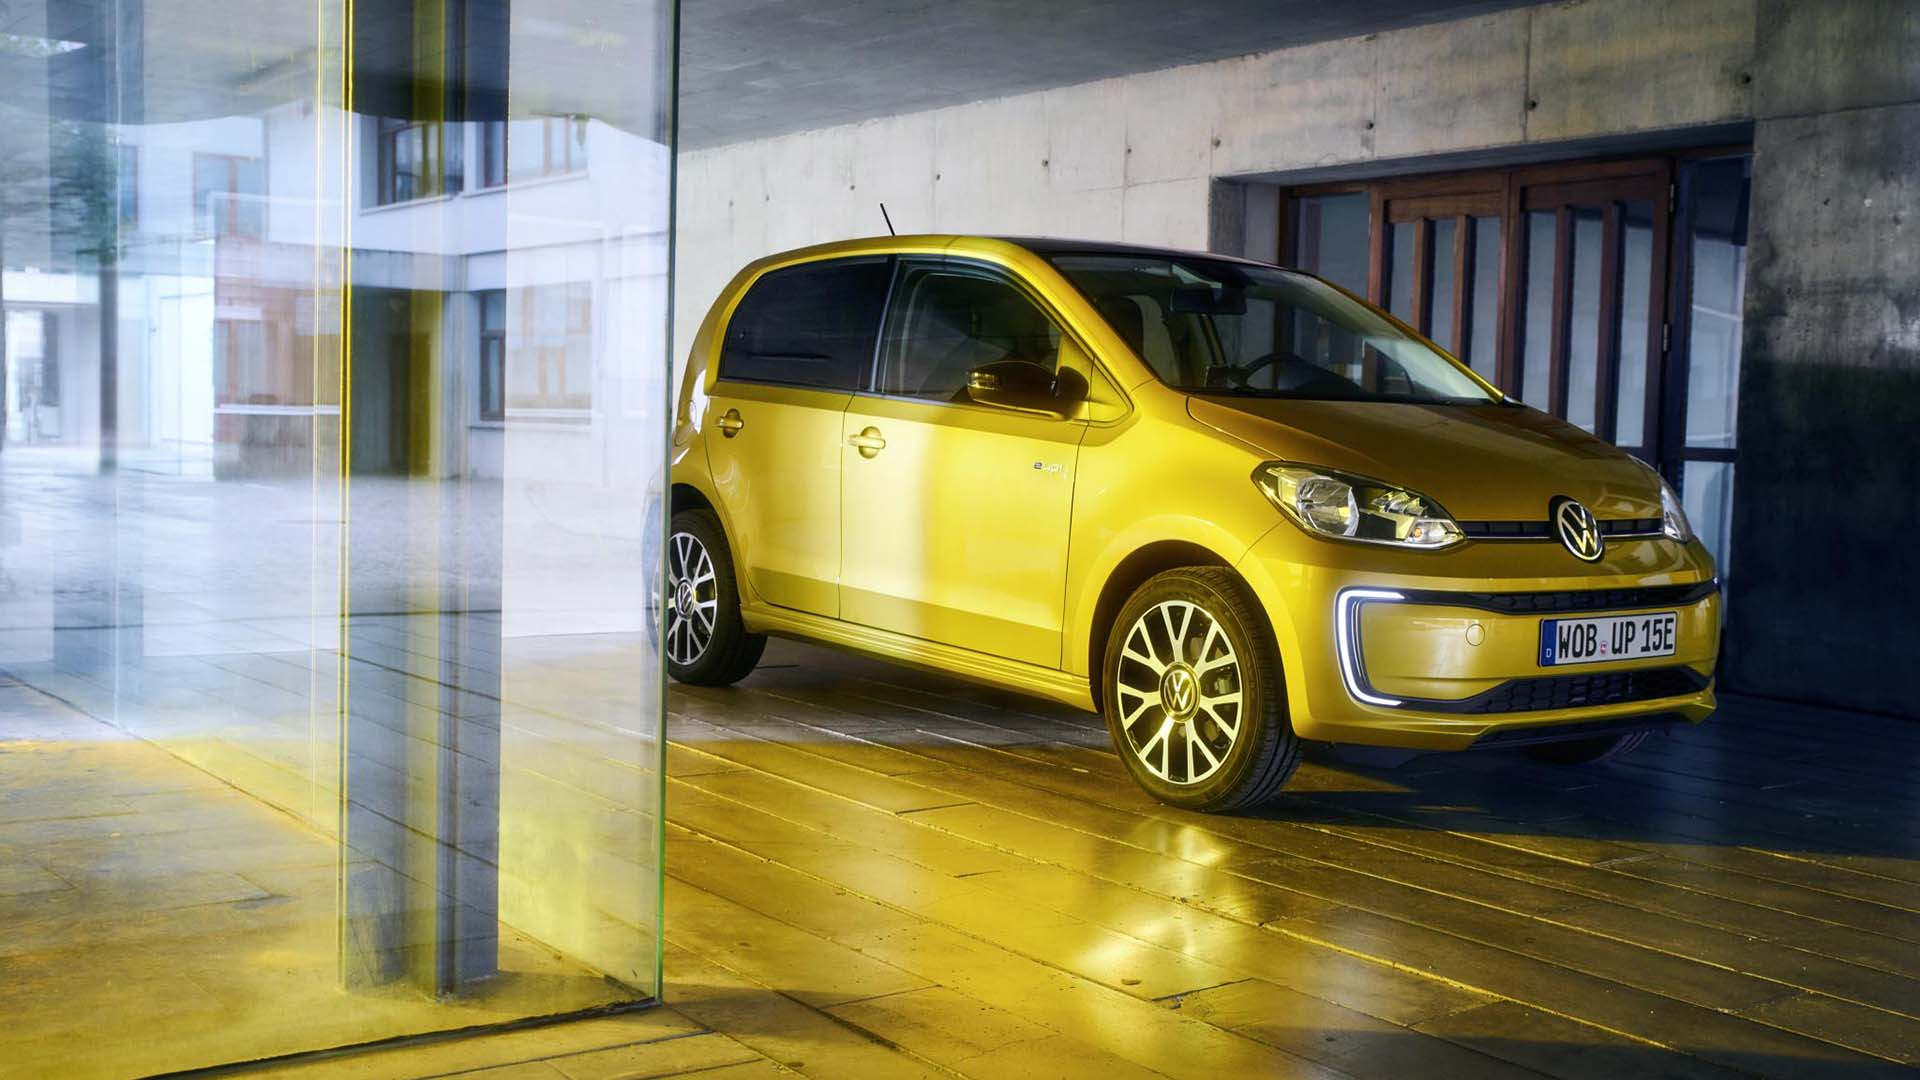 15. Volkswagen e-Up